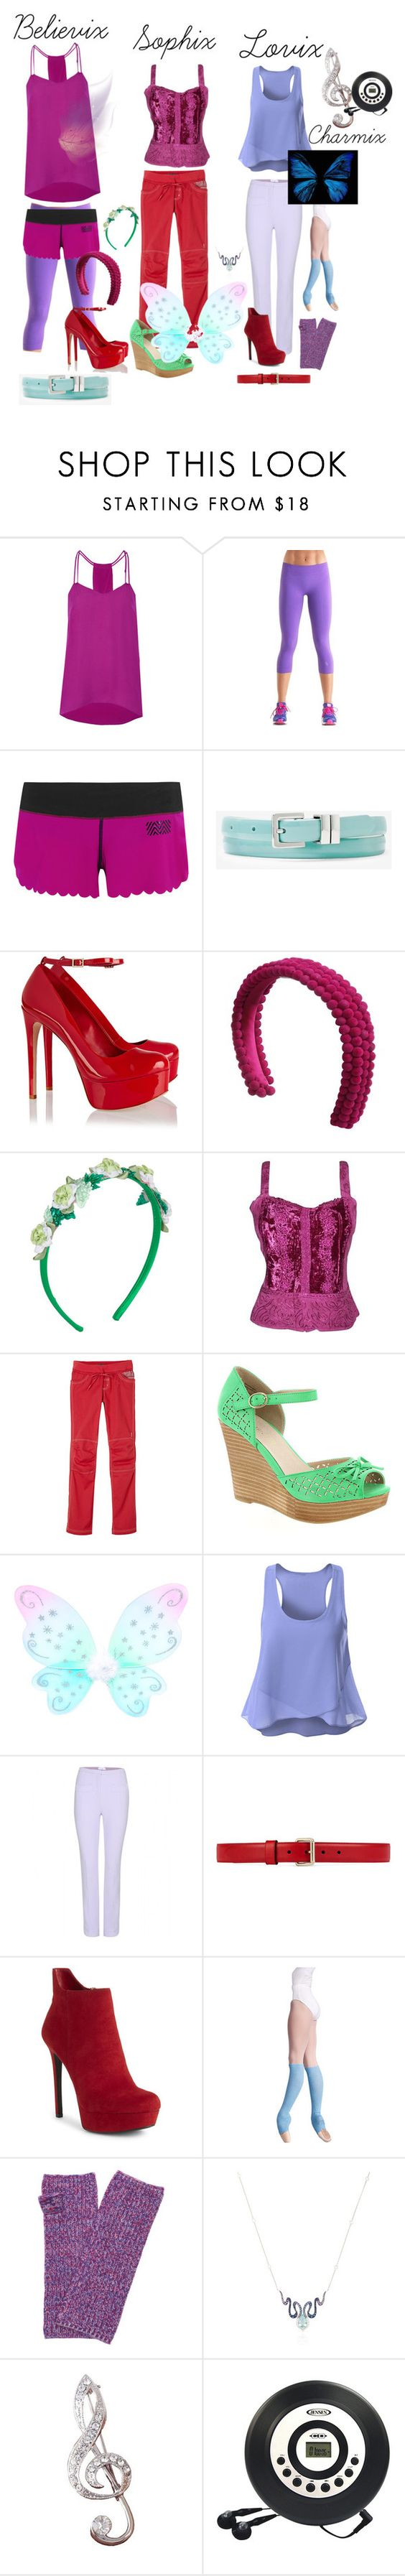 """Musa 2"" by number-3 ❤ liked on Polyvore featuring Rebecca Minkoff, Lupo, Monreal, White House Black Market, Schutz, prAna, Restricted, claire's, Carven and Gucci"